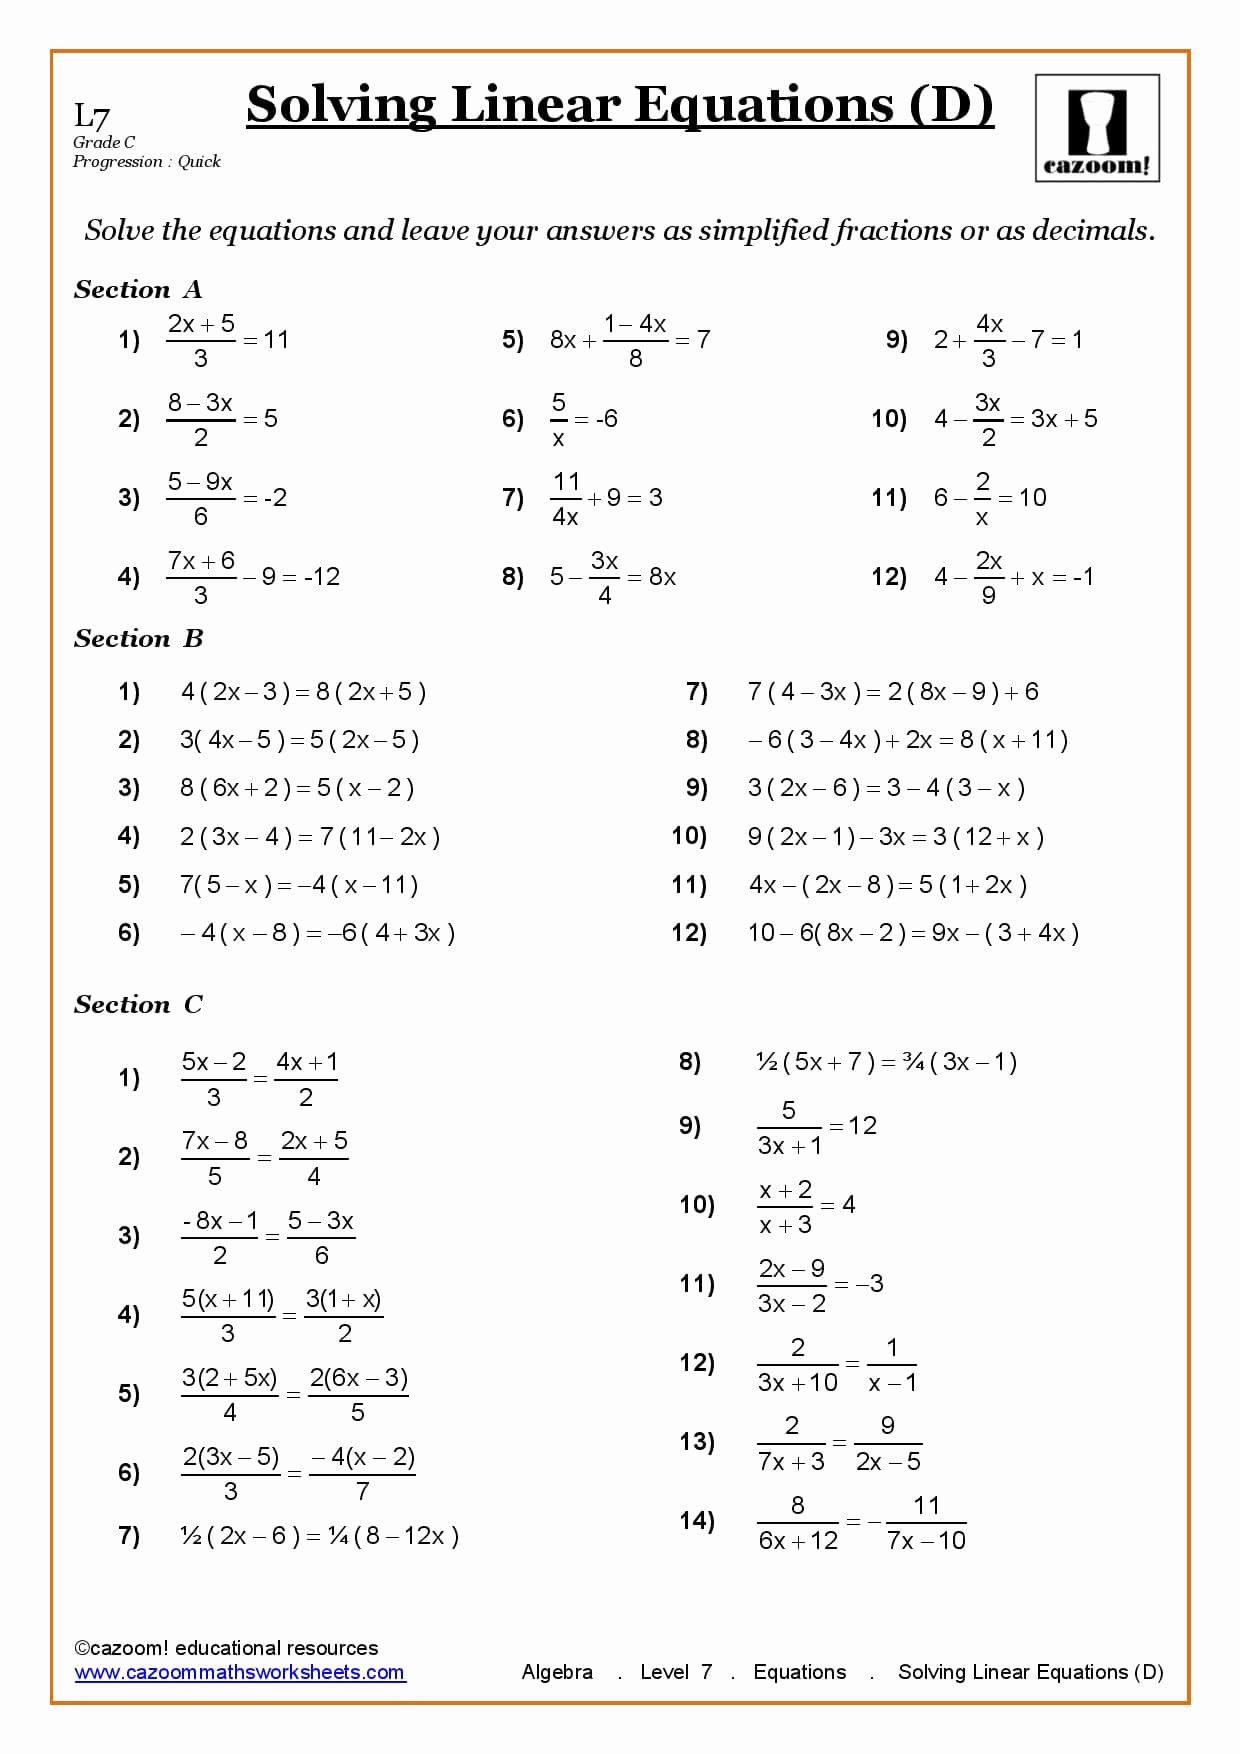 Solving Equations with Fractions Worksheet Best Of solving Linear Equations